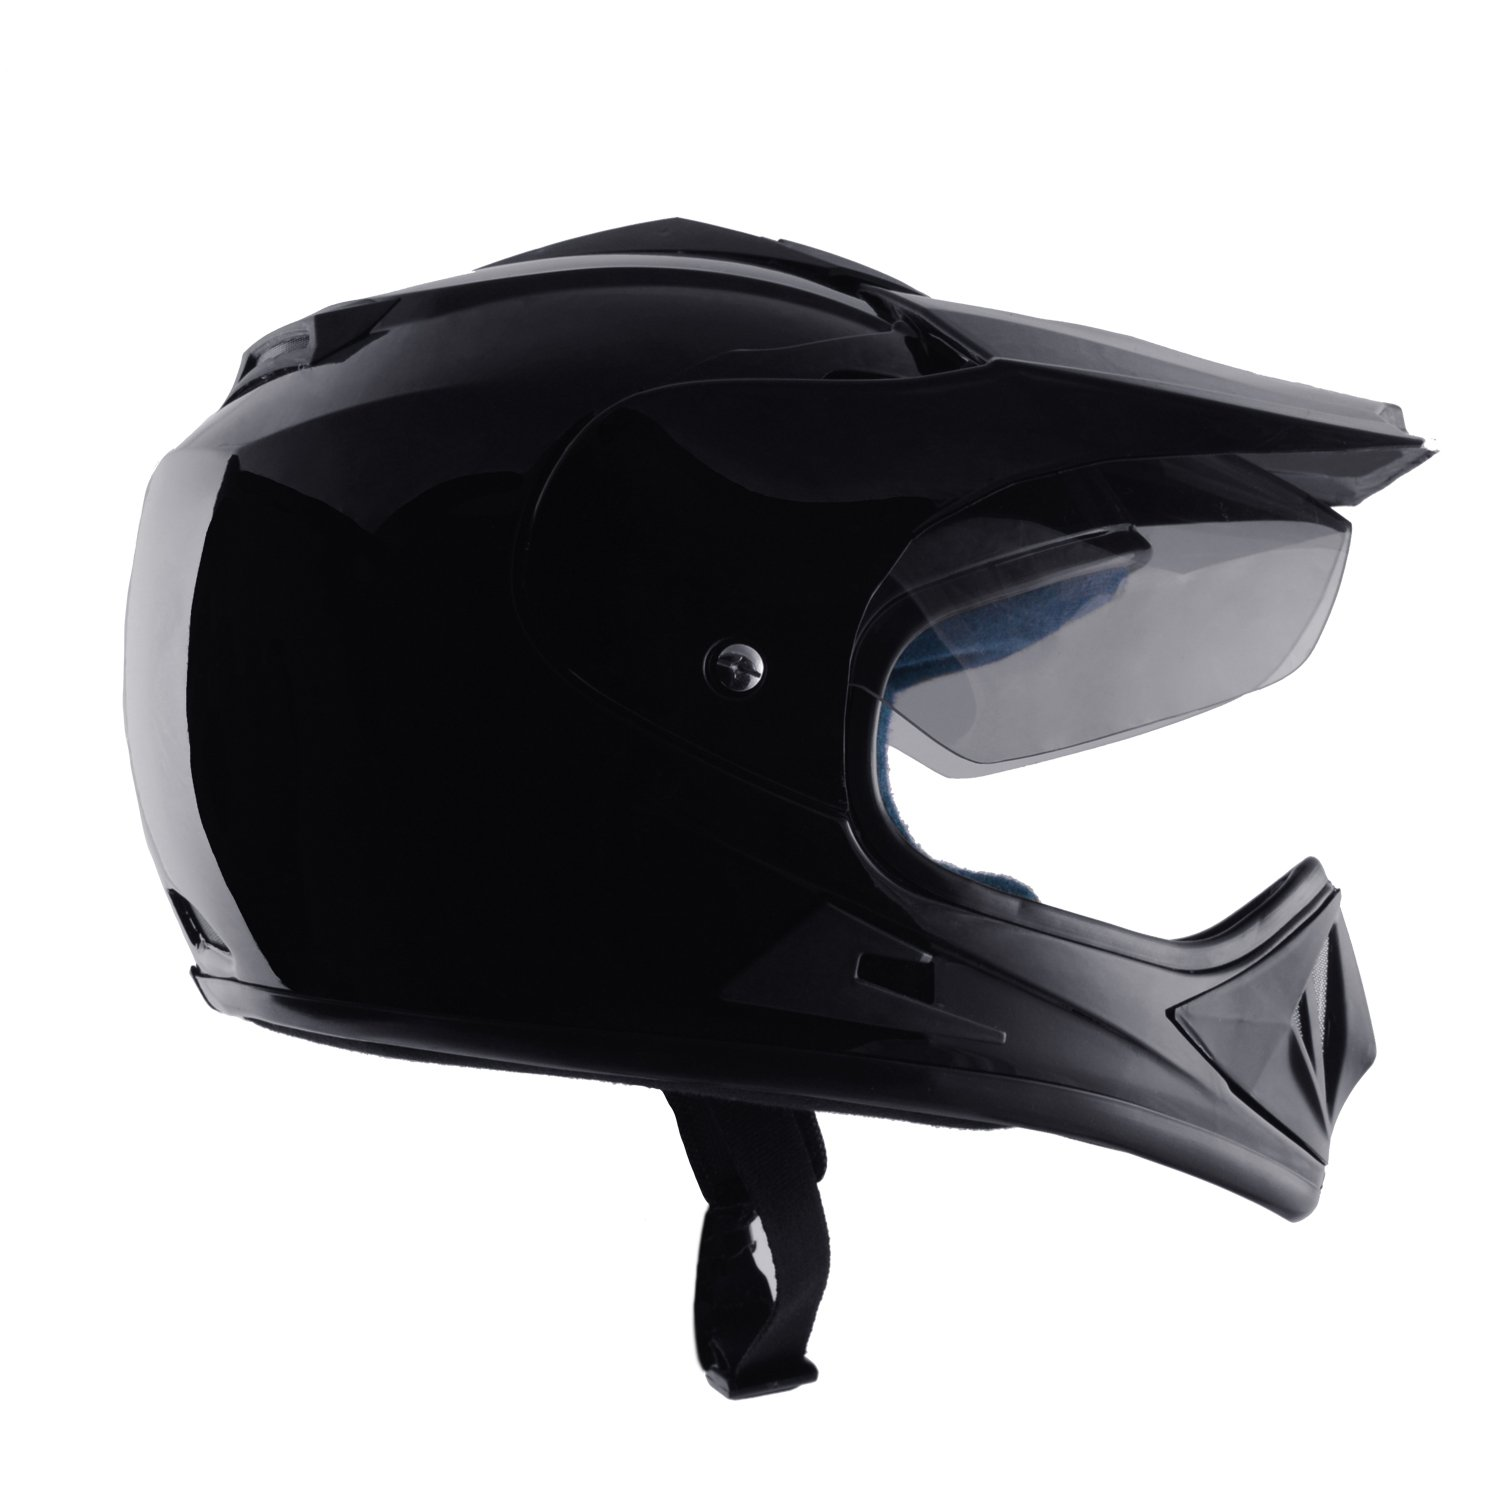 9a609a90 Autofy O2 On Road Full Face Motorcross Helmet With Tinted Scratch Resistant  Visor (Black,M): Amazon.in: Car & Motorbike